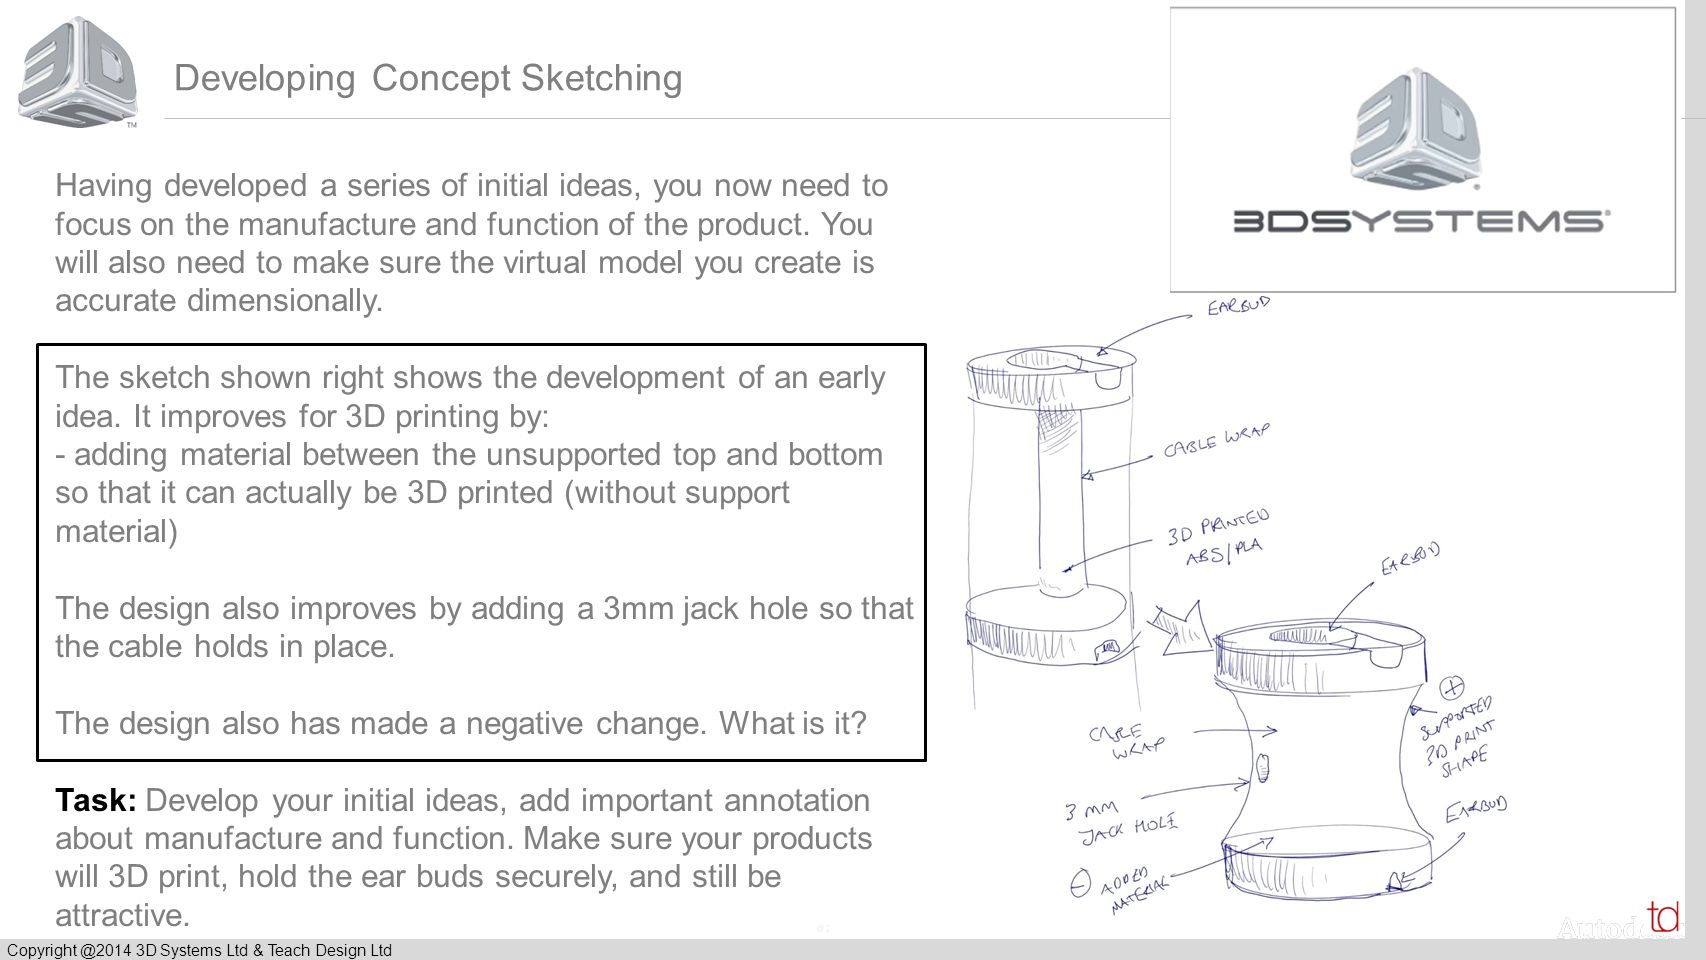 © 2012 Autodesk Copyright @2014 3D Systems Ltd & Teach Design Ltd Developing Concept Sketching Having developed a series of initial ideas, you now need to focus on the manufacture and function of the product.